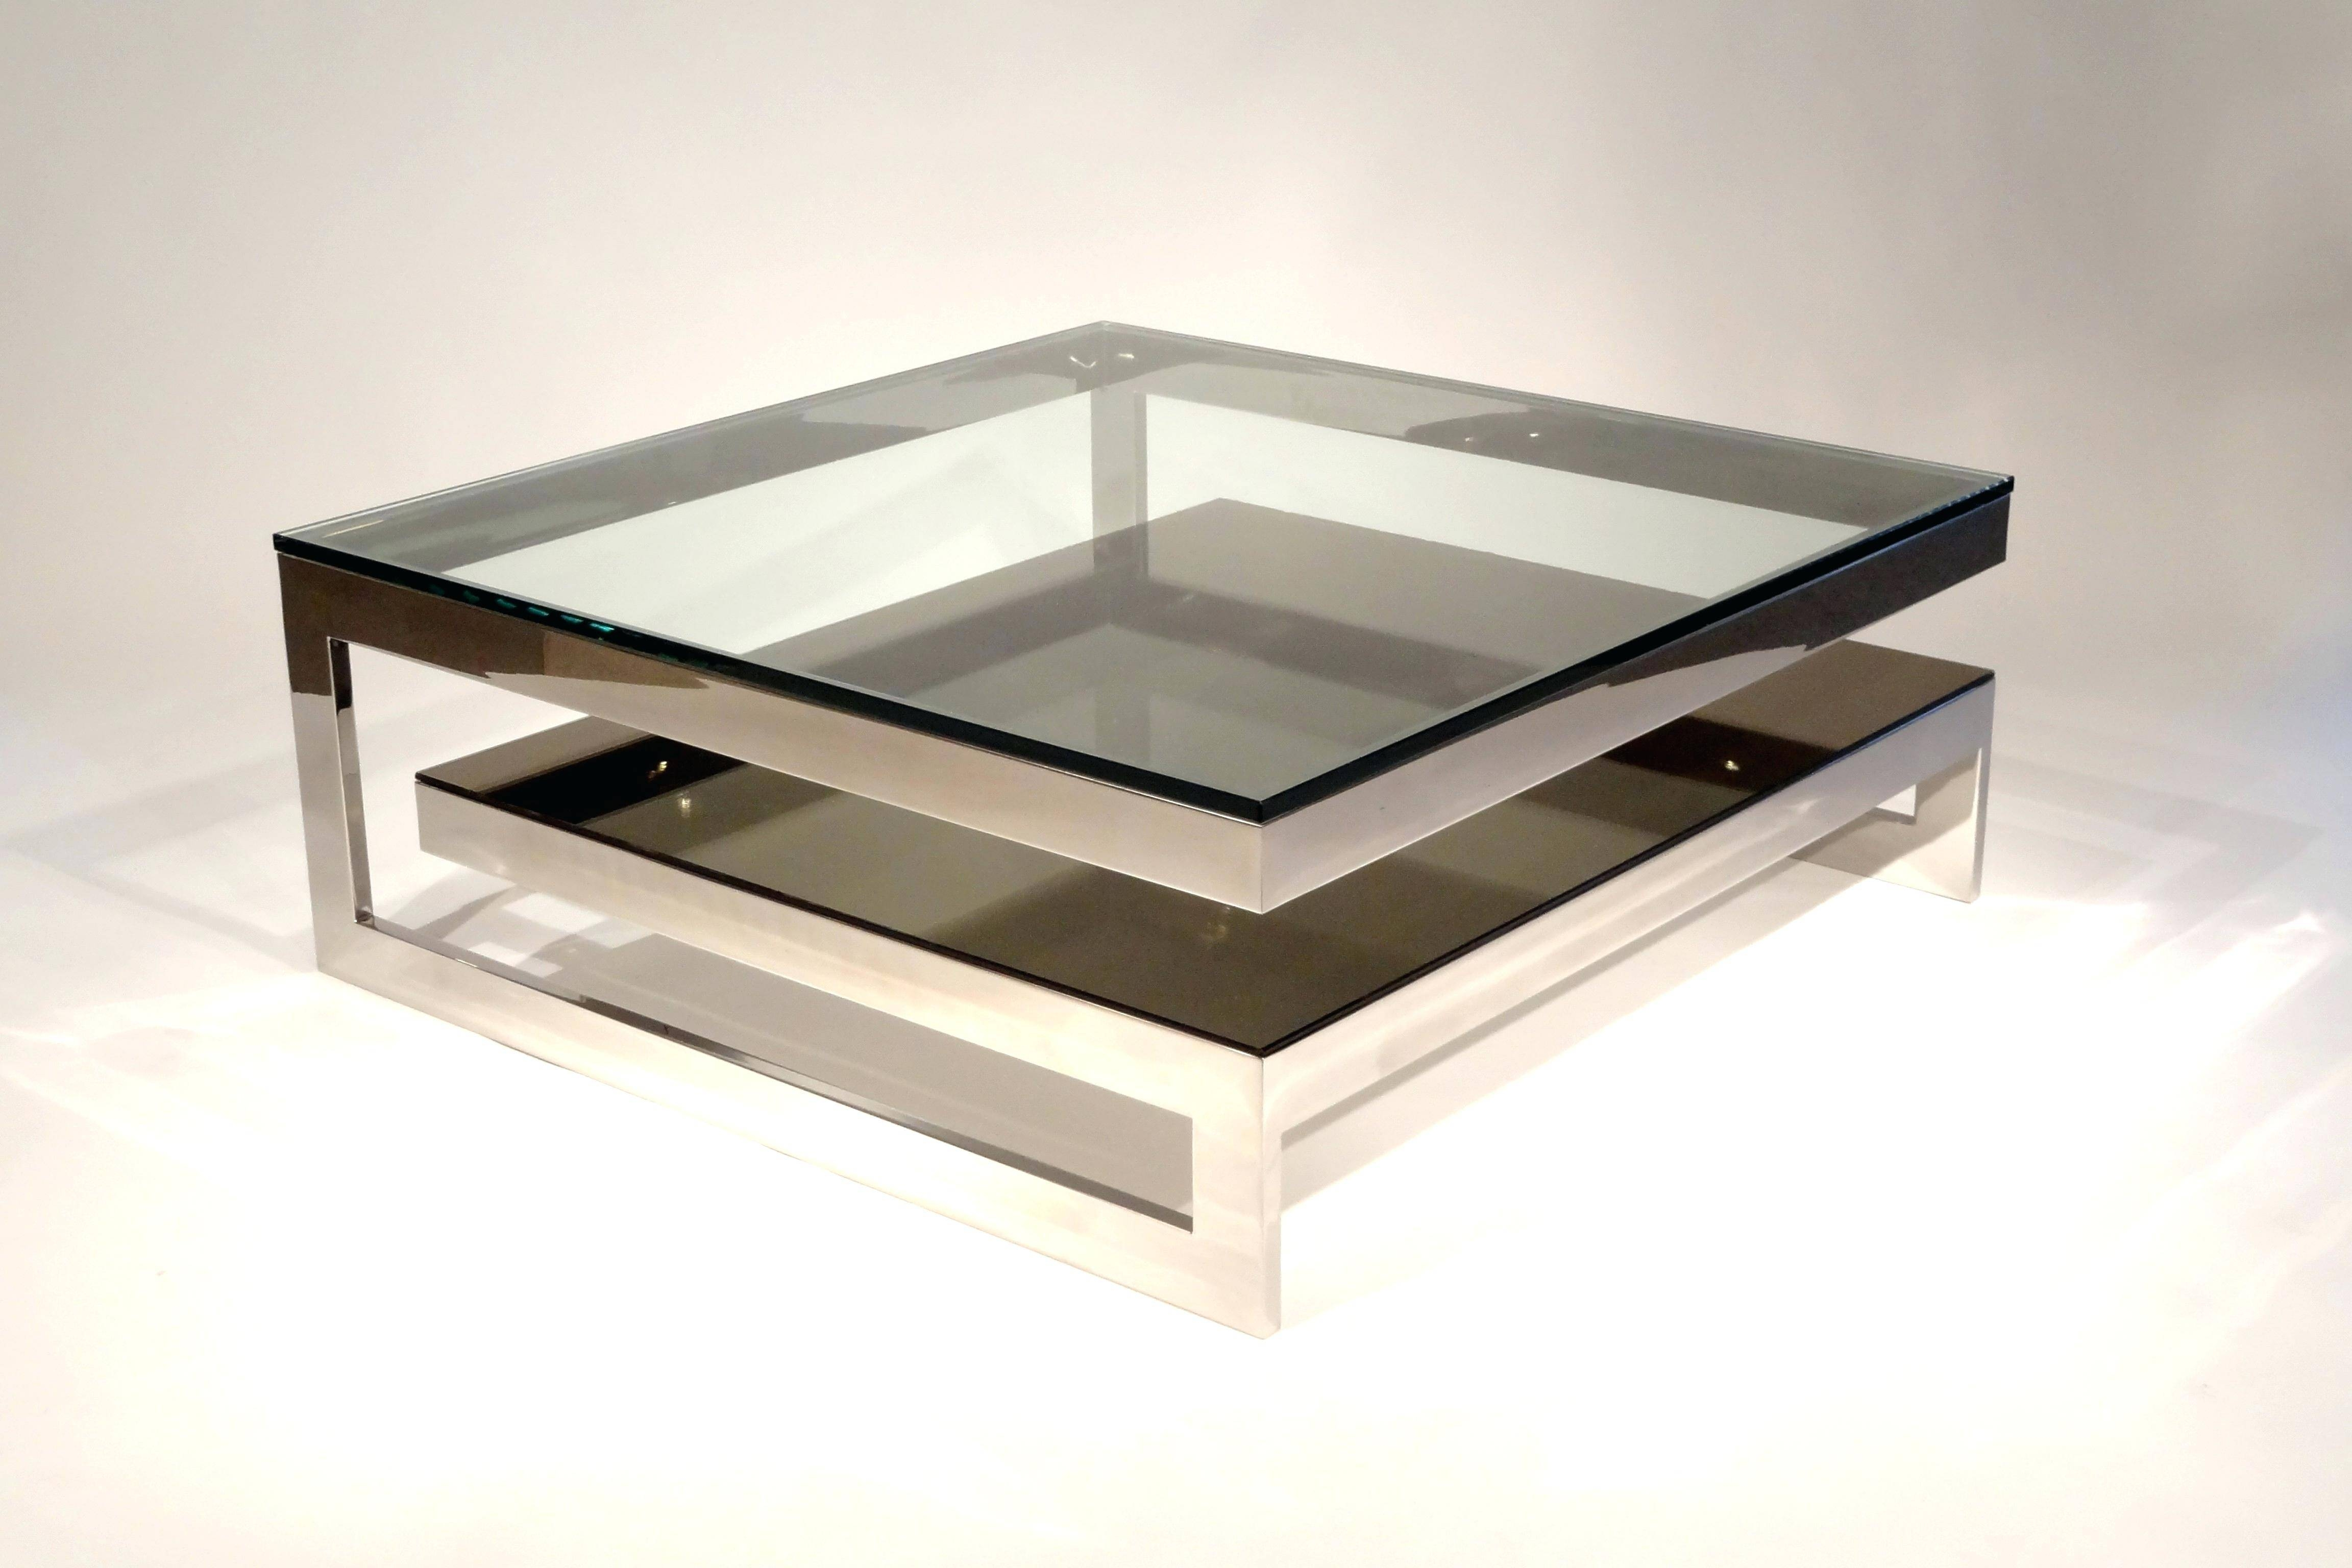 Mirrored Glass Sofa Table | Sofas Decoration inside Coffee Tables Mirrored (Image 22 of 30)